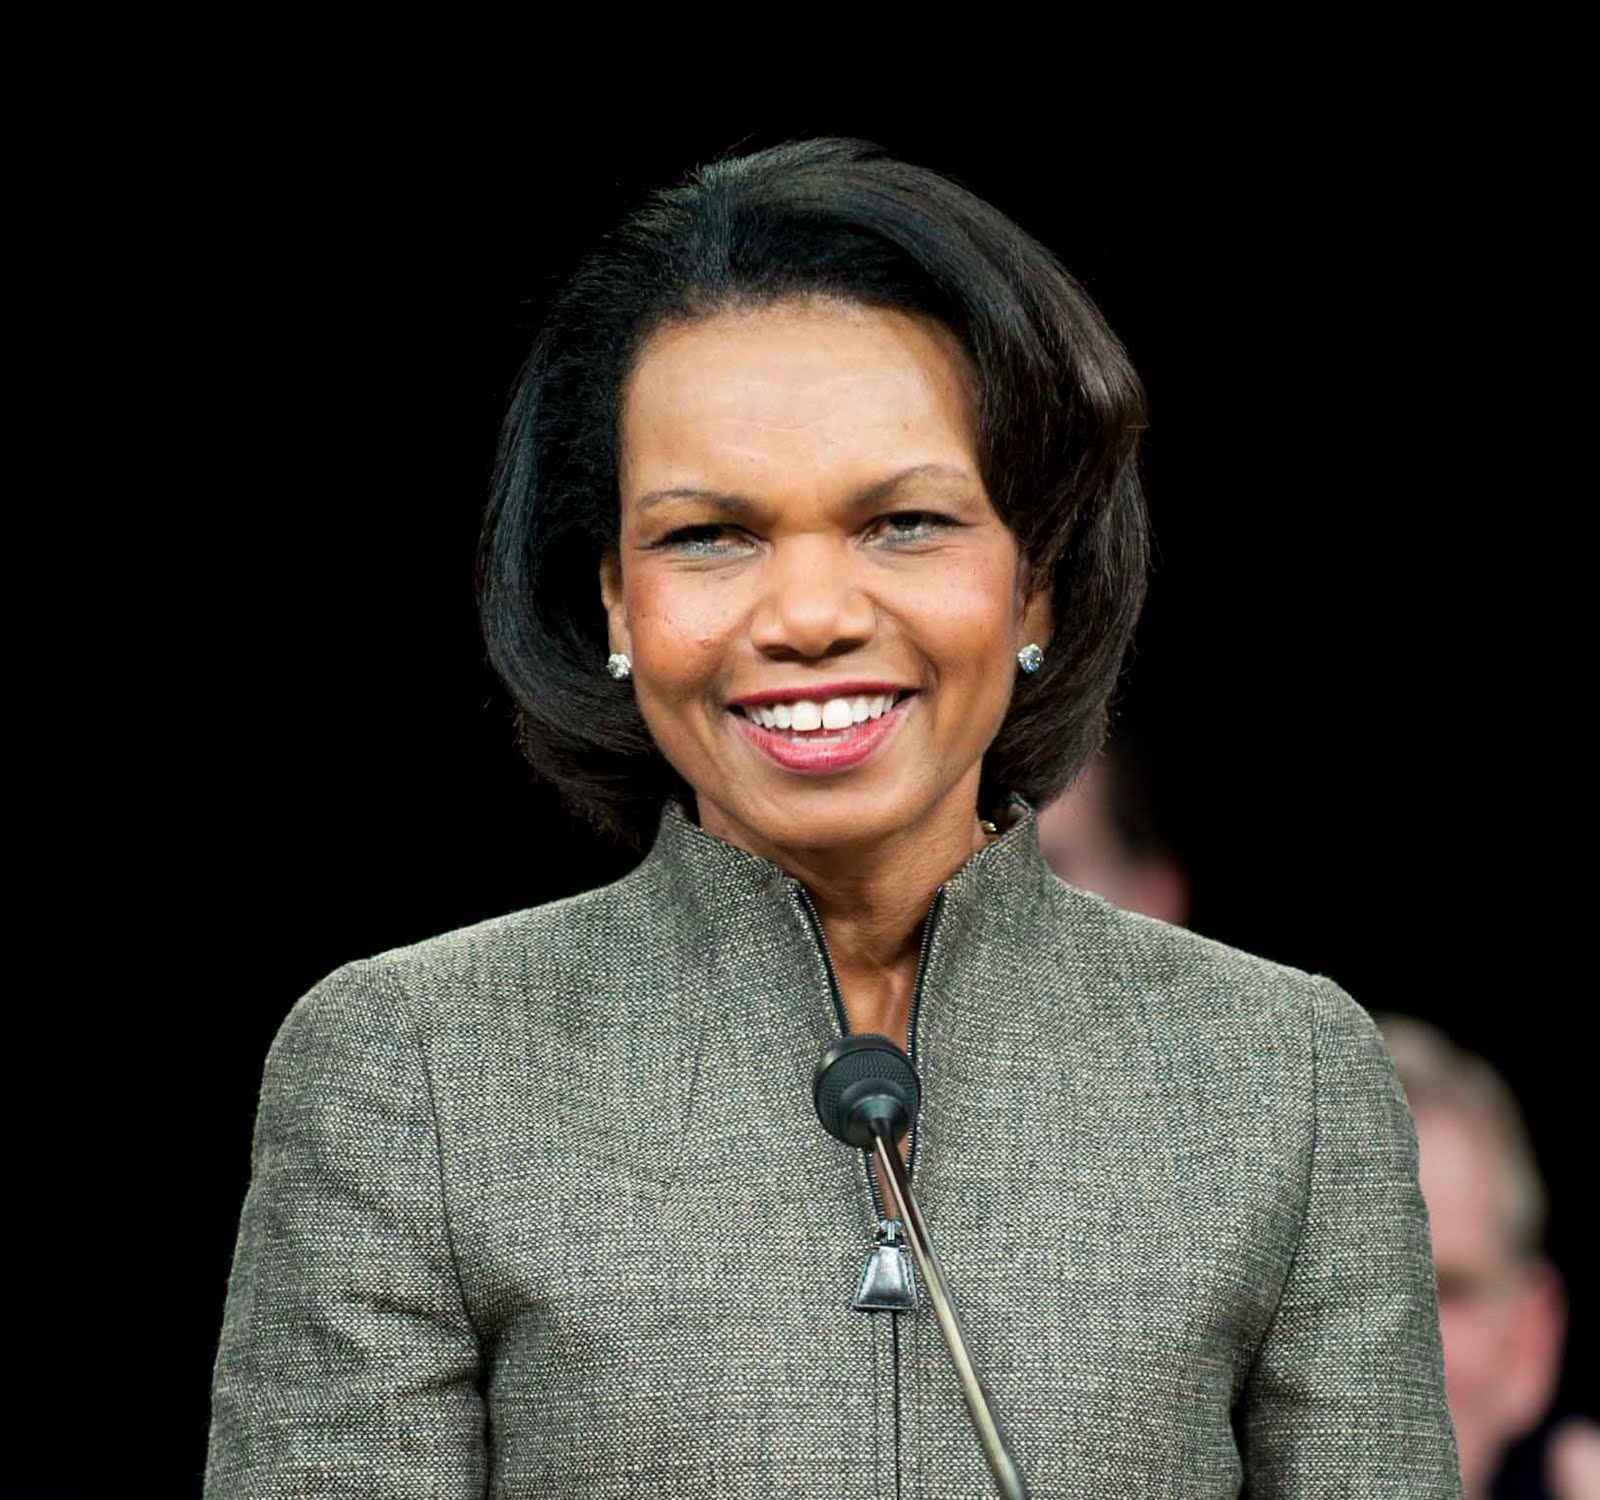 condoleezza rice The latest tweets from condoleezza rice (@condoleezzarice) professor, author, pianist, golfer, avid football fan, former us secretary of state & national security.